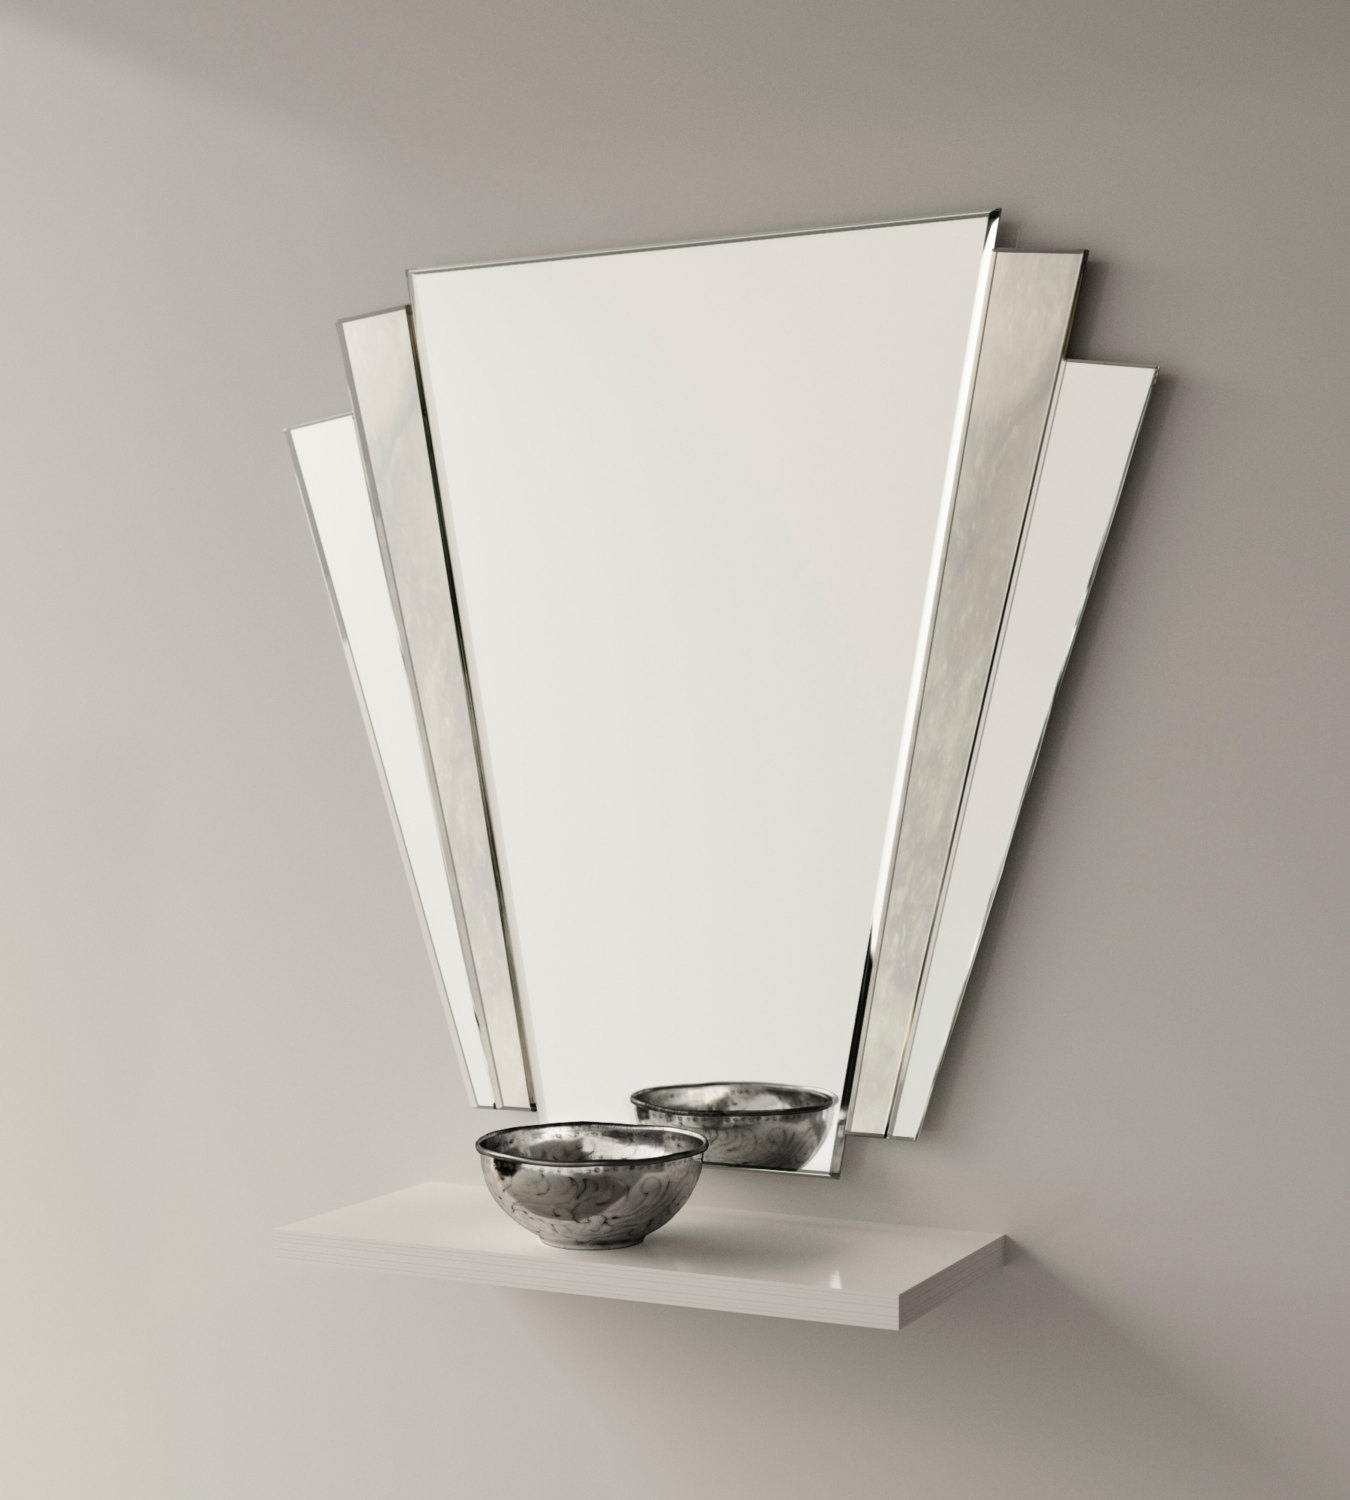 Art Deco Wall Mirror Inarace Pertaining To Art Nouveau Mirrors For Sale (View 9 of 15)